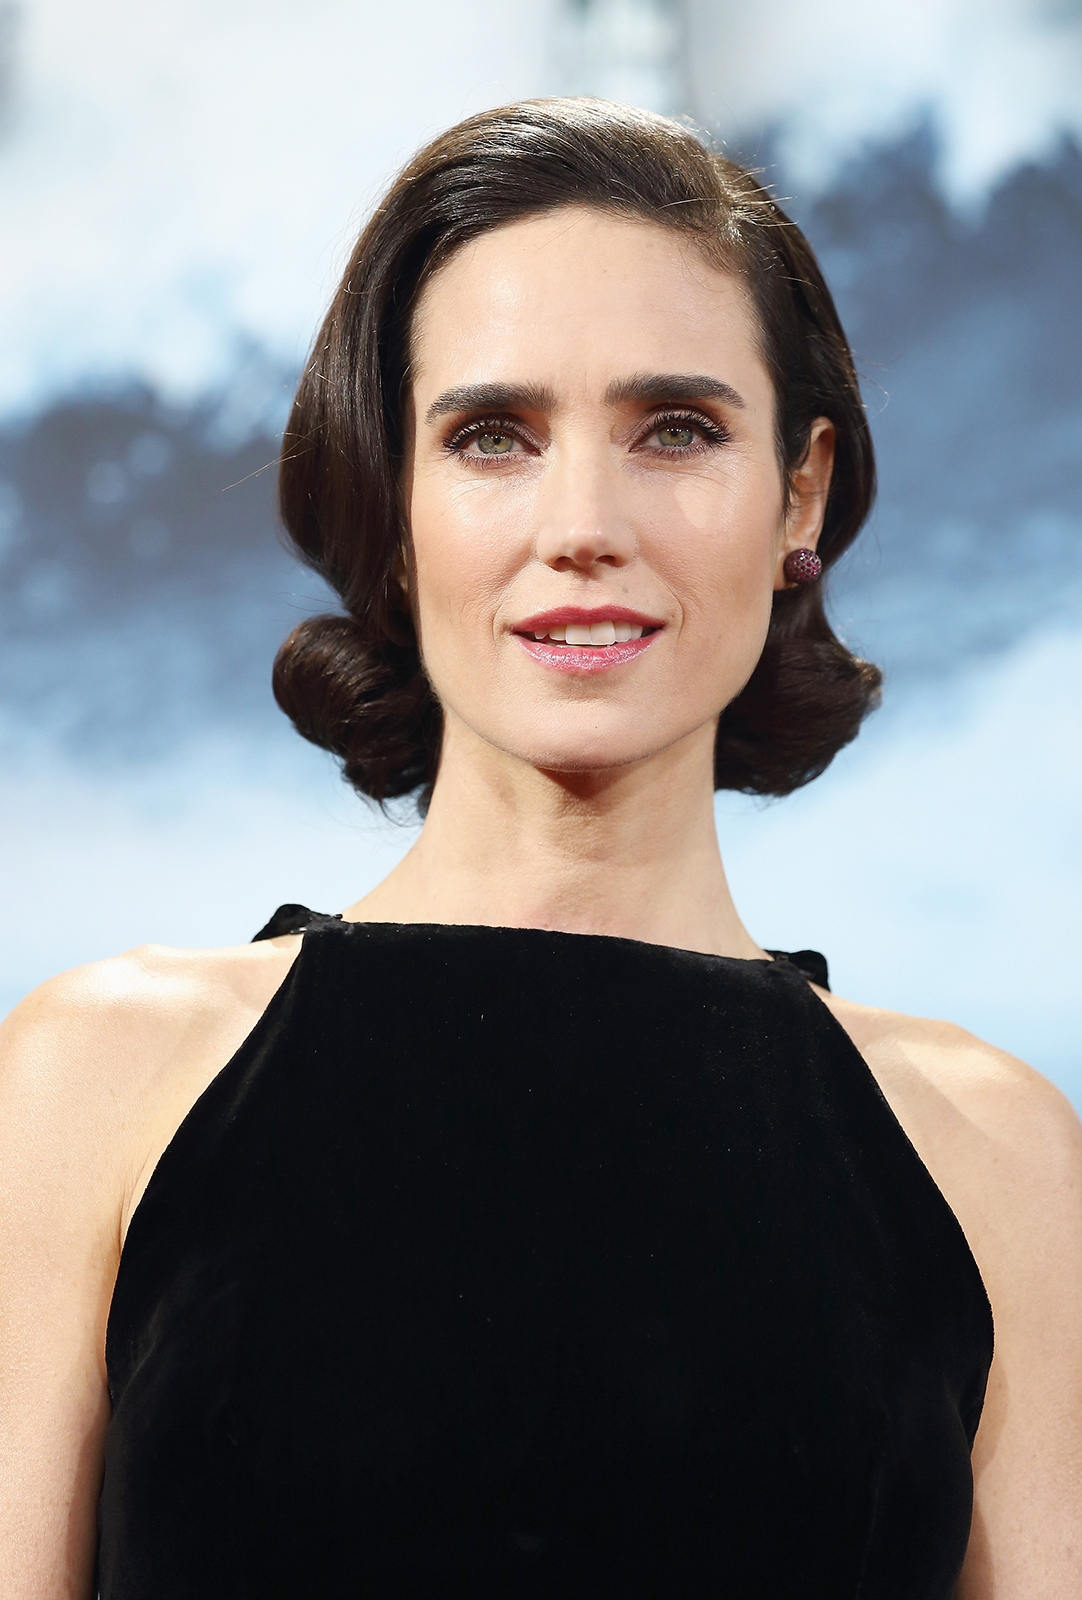 Jennifer connelly career opportunities - 2 3